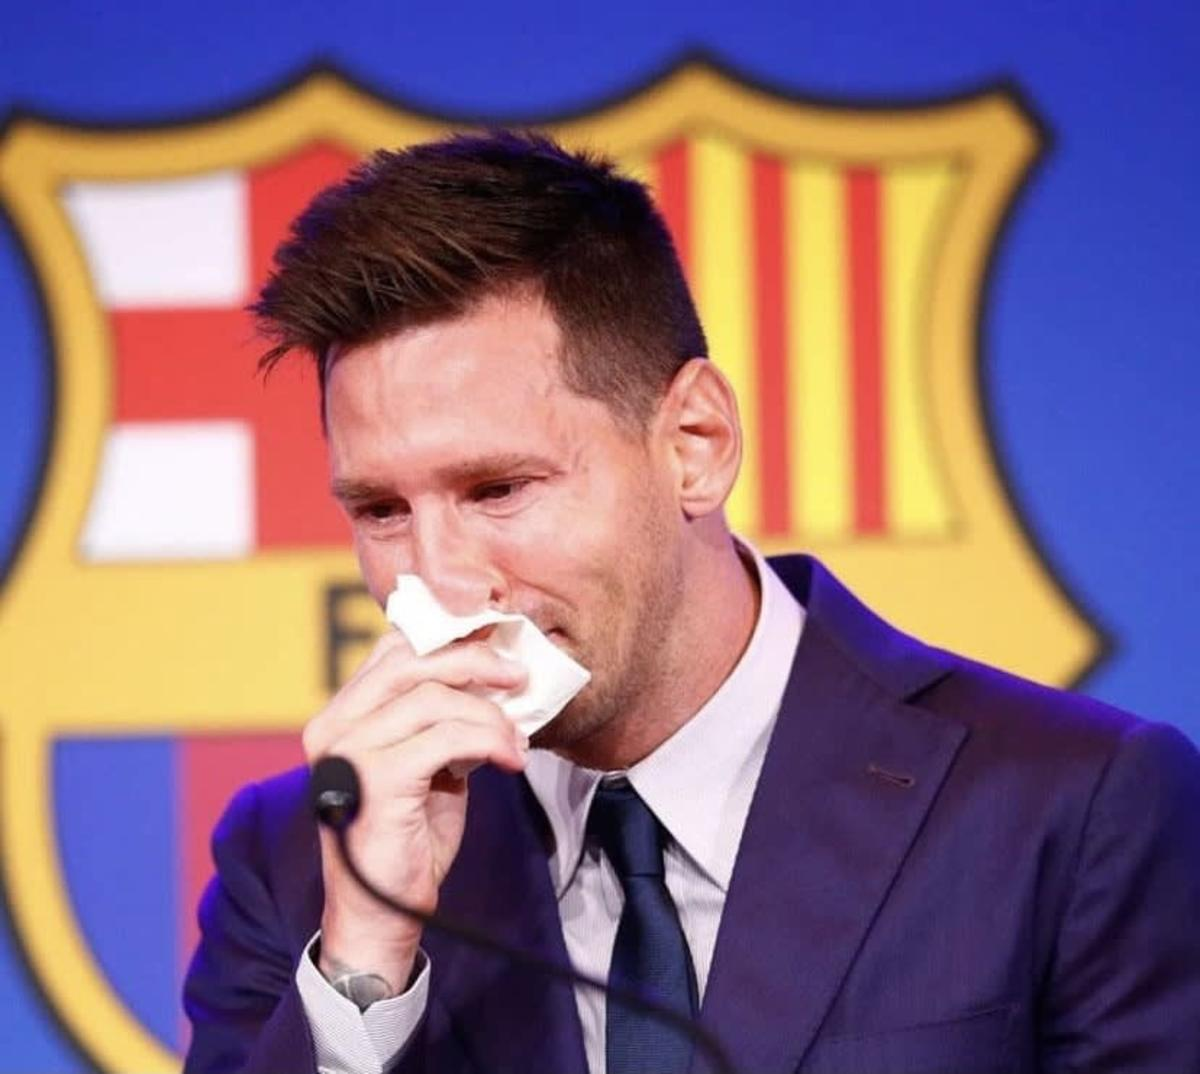 Lionel Messi crying during Barcelona farewell, 2021